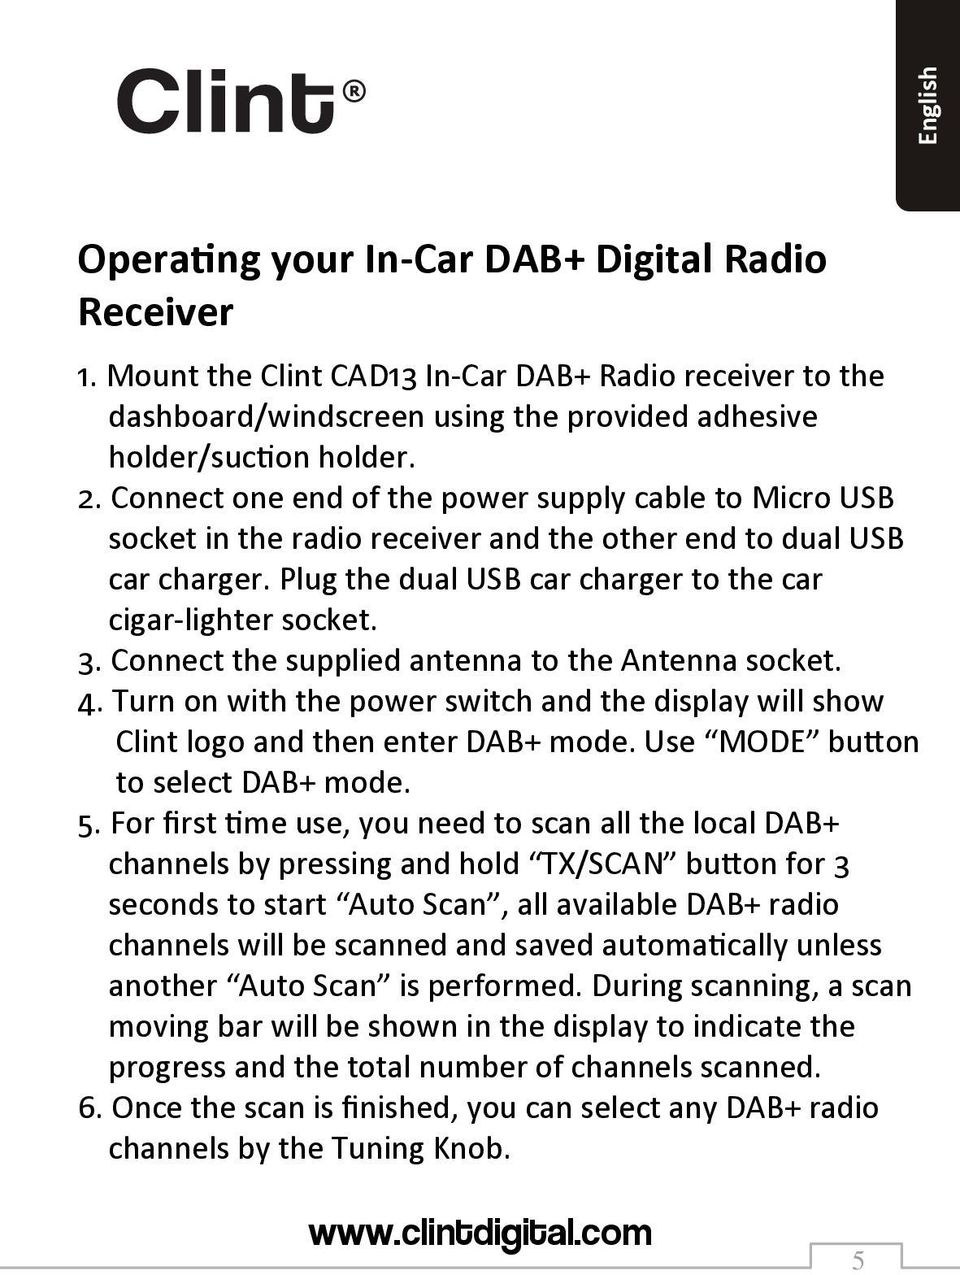 Connect the supplied antenna to the Antenna socket. 4. Turn on with the power switch and the display will show Clint logo and then enter DAB+ mode. Use MODE button to select DAB+ mode. 5.